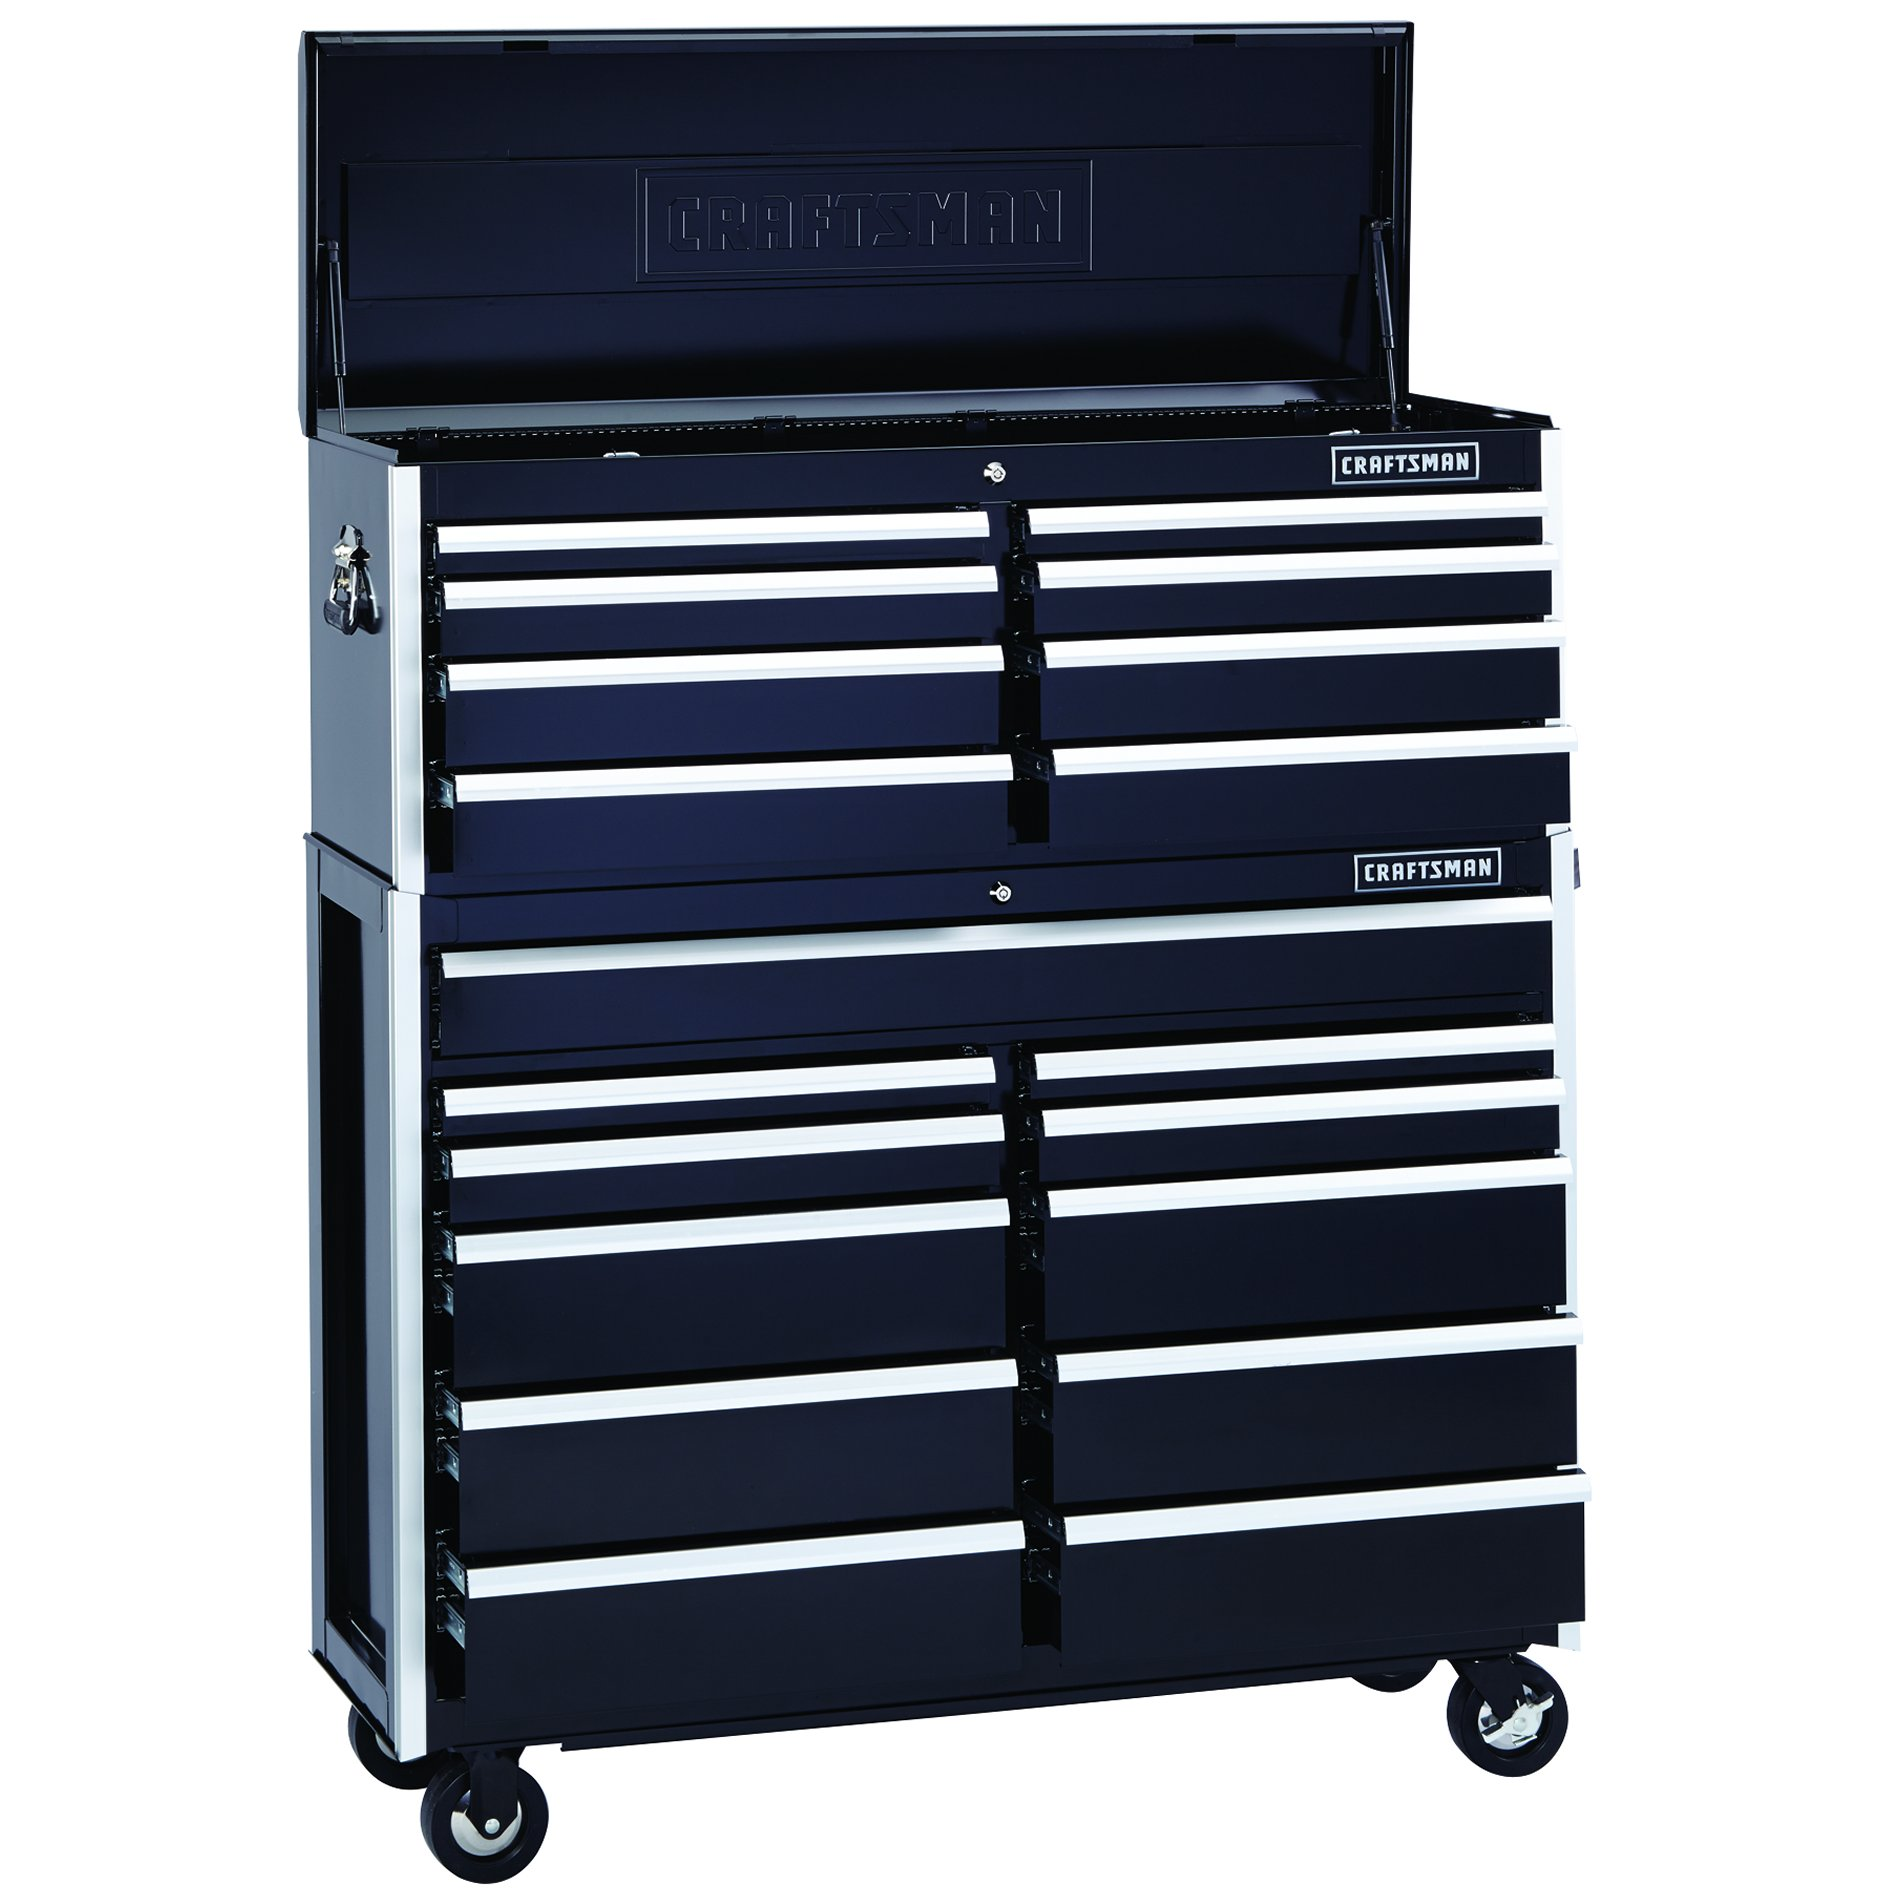 Craftsman EDGE Series 52-In. 11-Drawer Premium Heavy-Duty Ball-Bearing Rolling Cart - Black